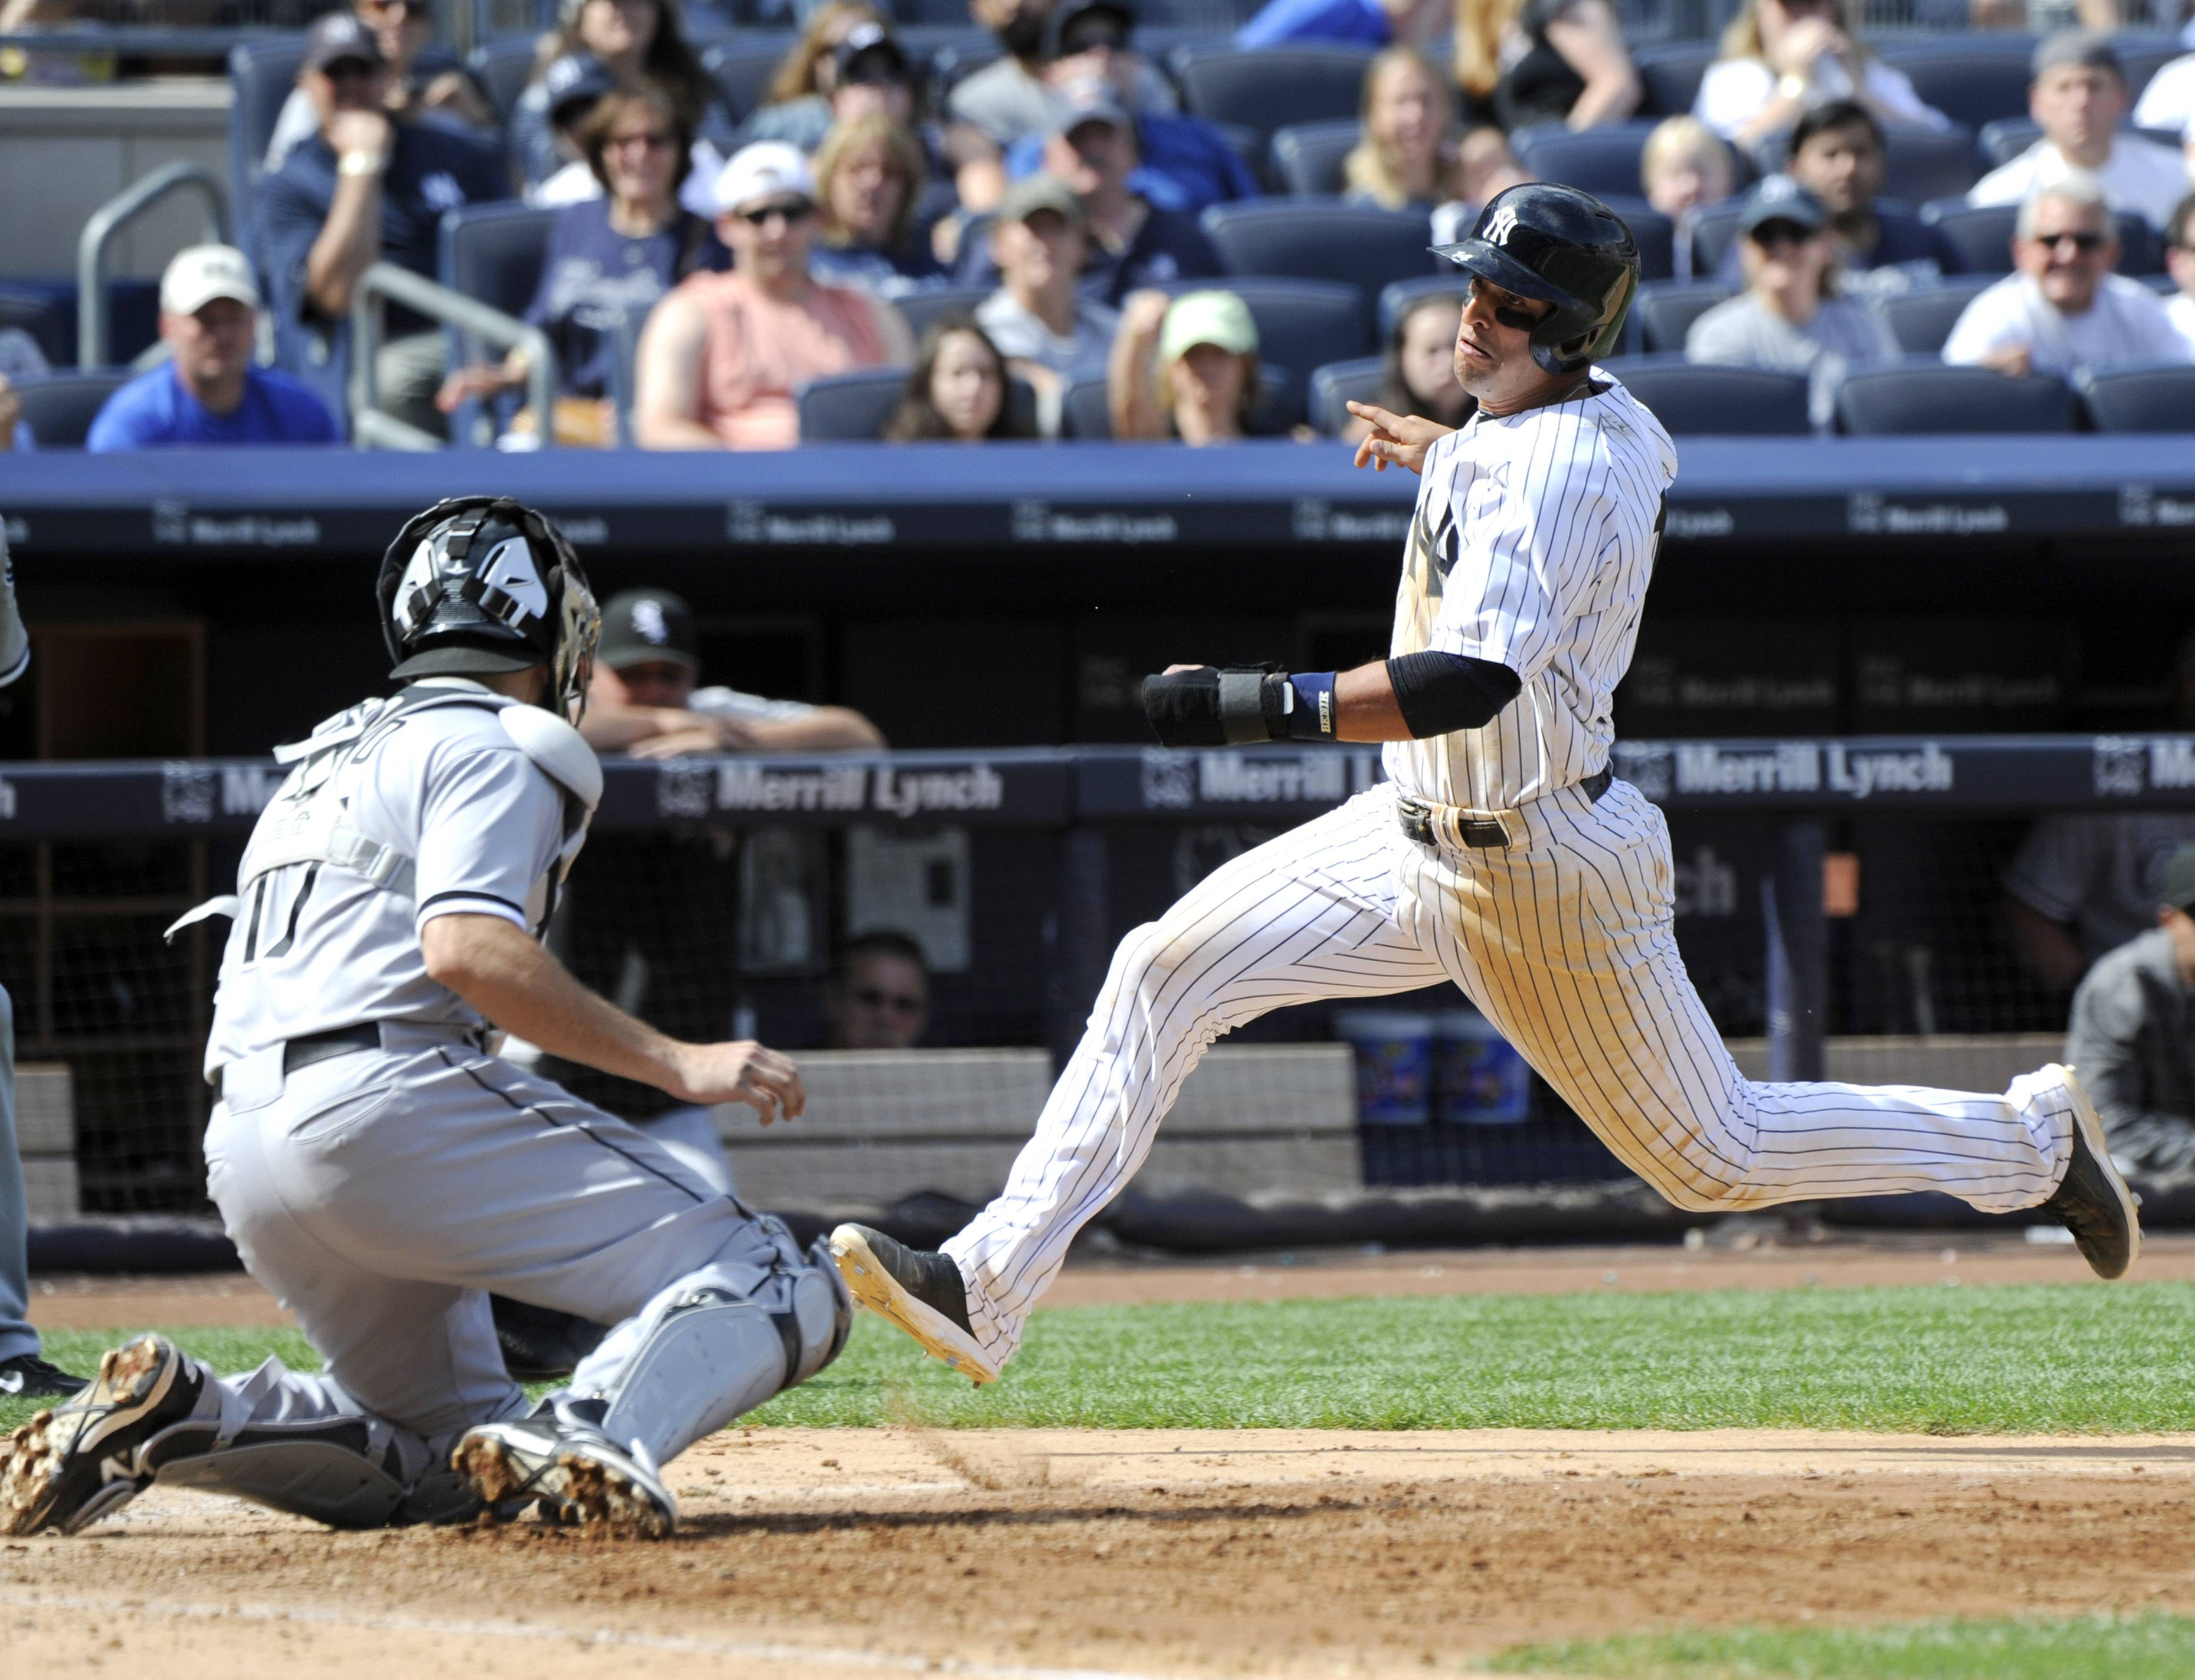 Carlos Beltran gave the Yankees' struggling offense a jolt with a home run in his return to the lineup, Martin Prado had another go-ahead hit and New York beat the White Sox 5-3 on Saturday. Hiroki Kuroda (9-8) worked in and out of trouble for six innings, allowing two runs and five hits in helping New York to its third straight win after a 2-7 stretch.